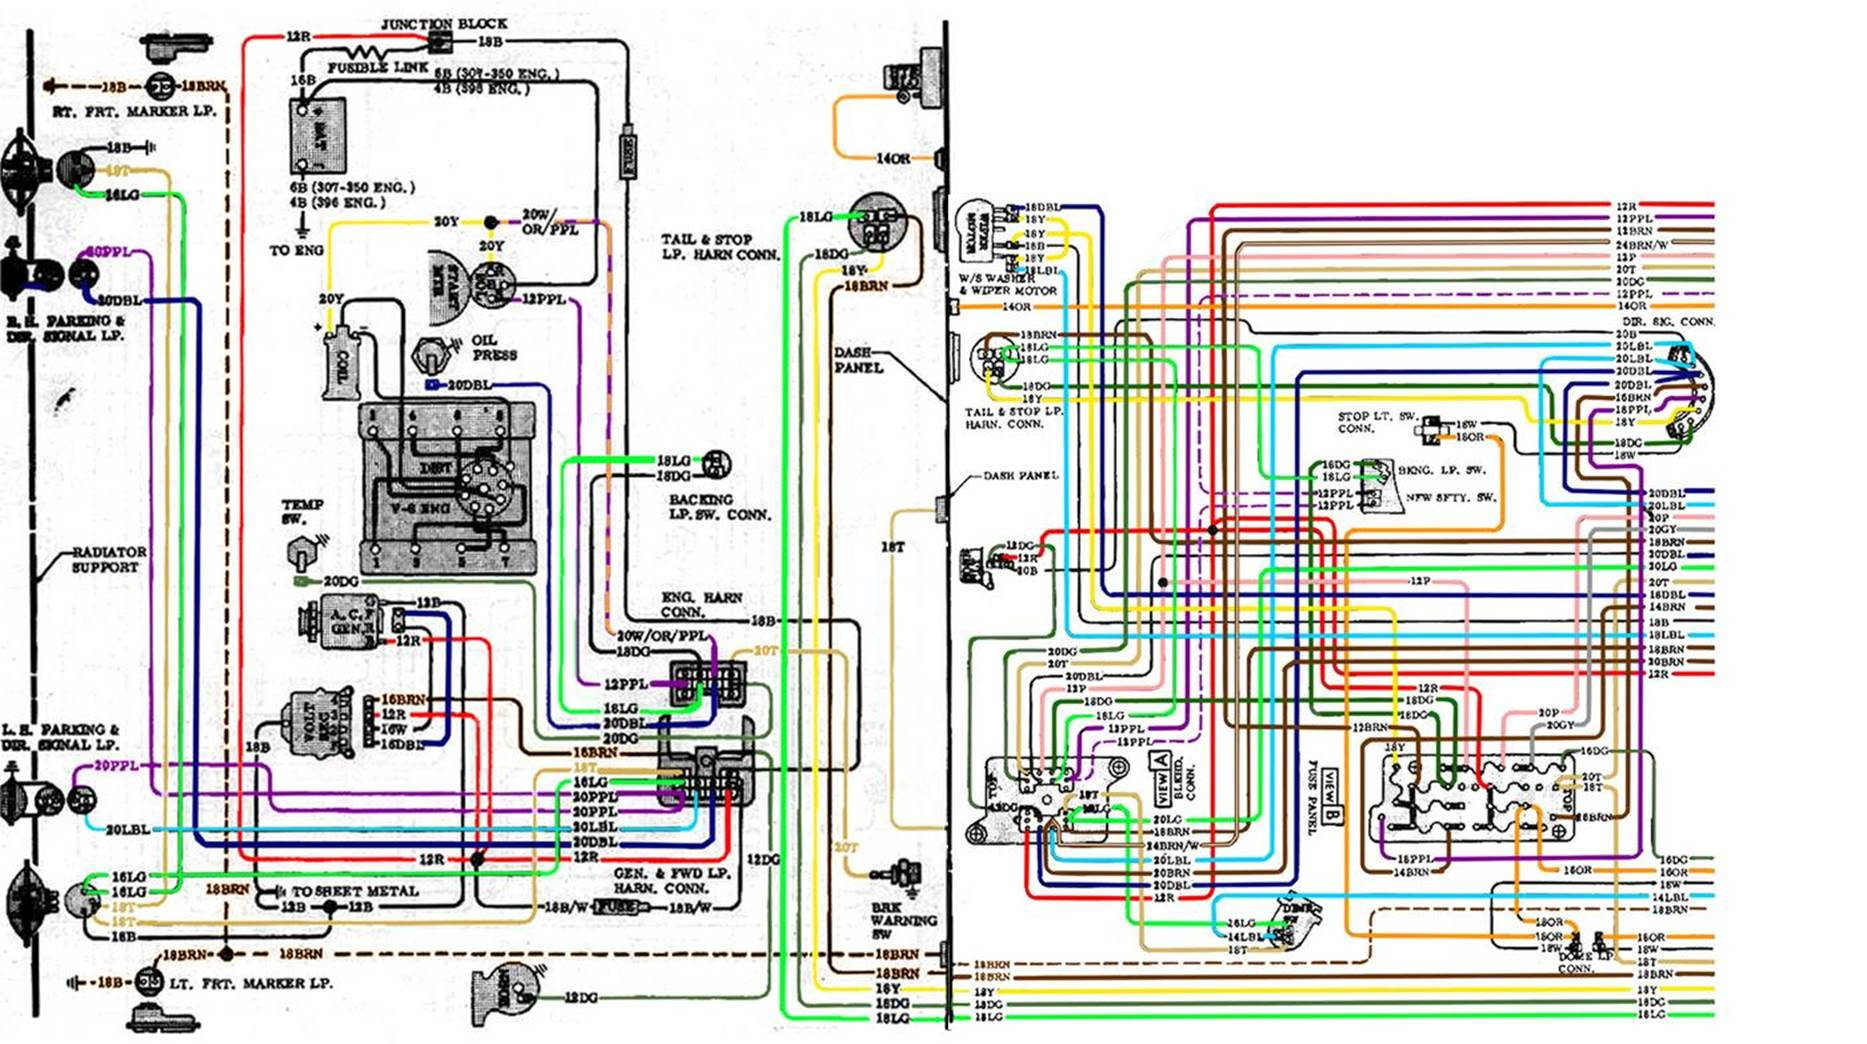 1972 chevrolet c10 wiring diagram wiring diagram simonand  1934 chevy wiring diagram schematic